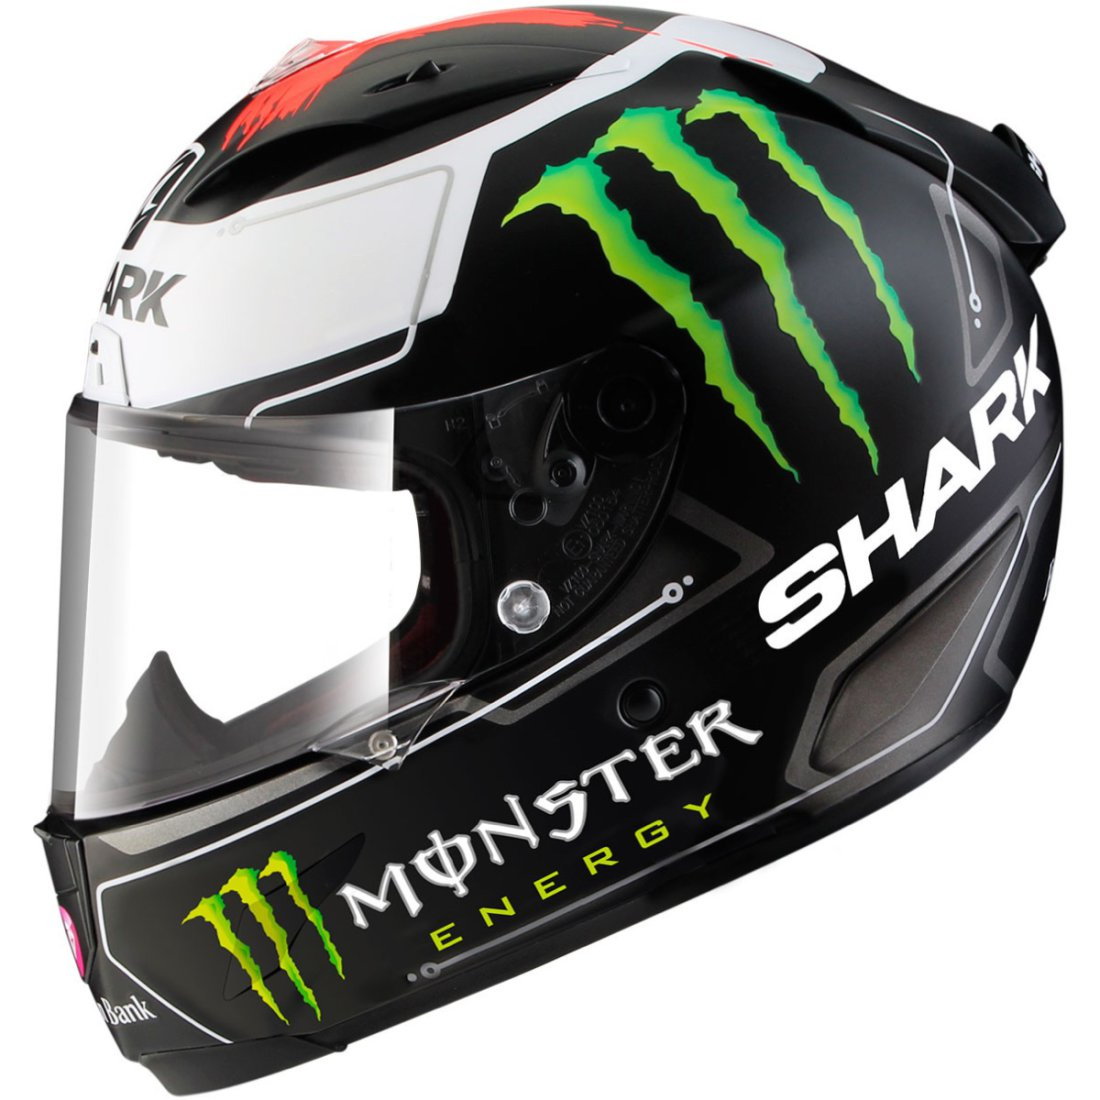 Casco Shark Race R Pro Lorenzo Monster Mat Kwr 183 Motocard